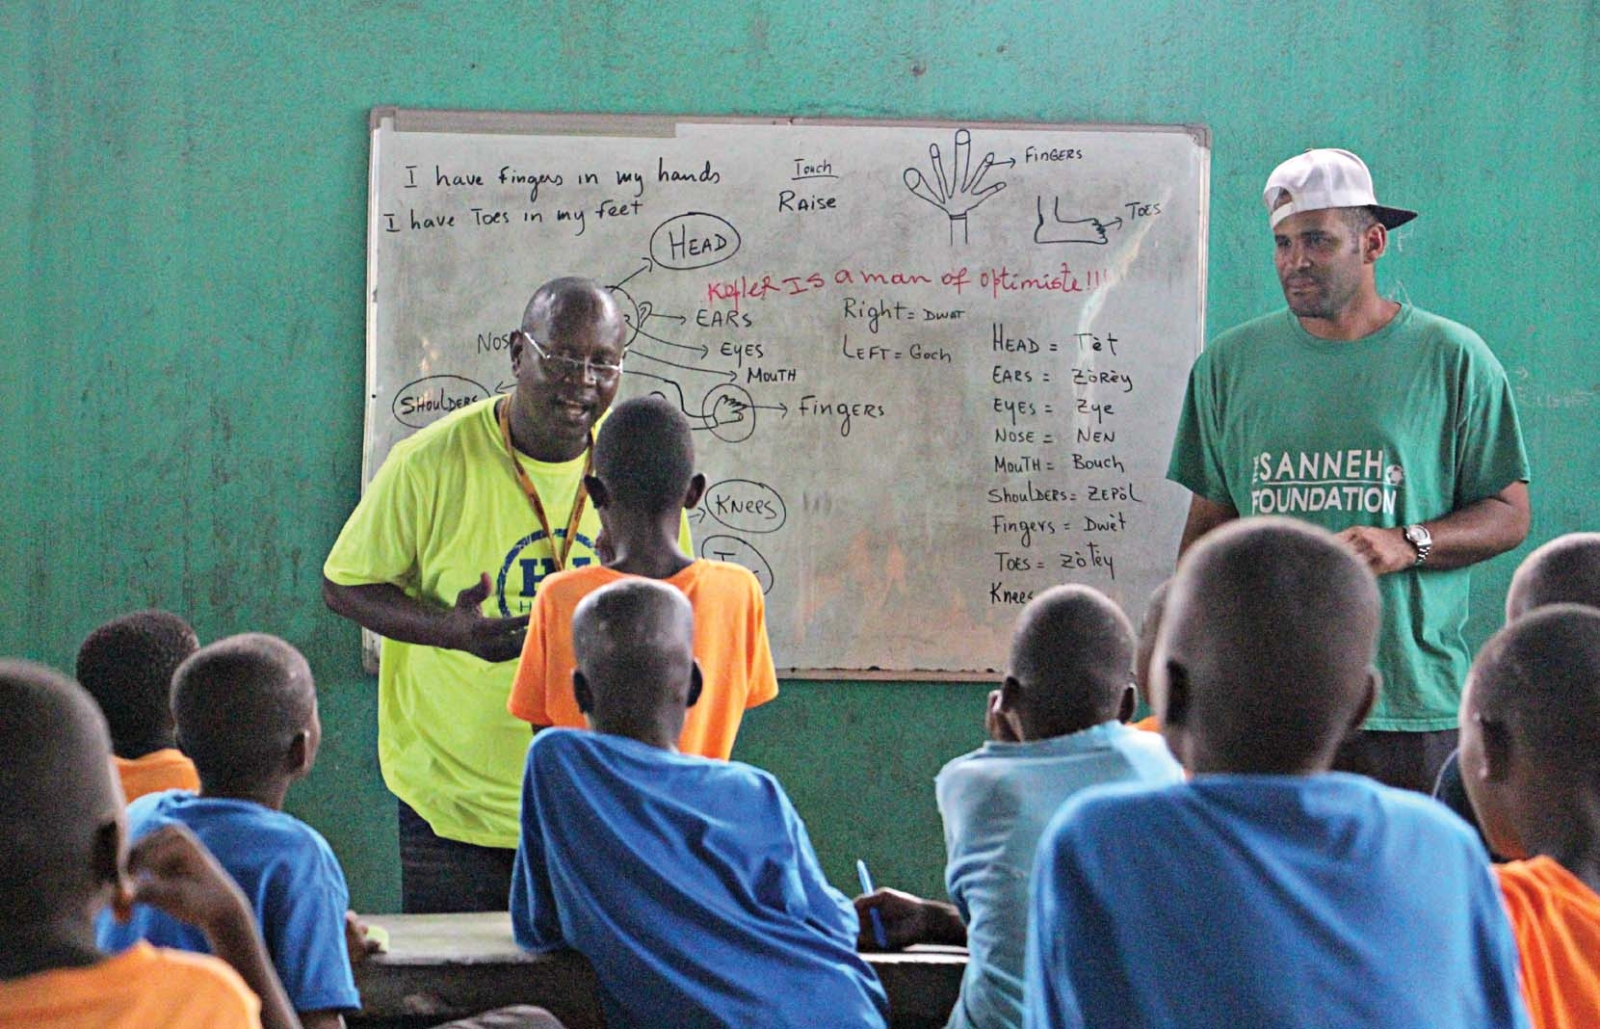 Sanneh's Haitian Initiative in Port-au-Prince, Haiti, rewards passing grades and school attendance with soccer training and hot meals.